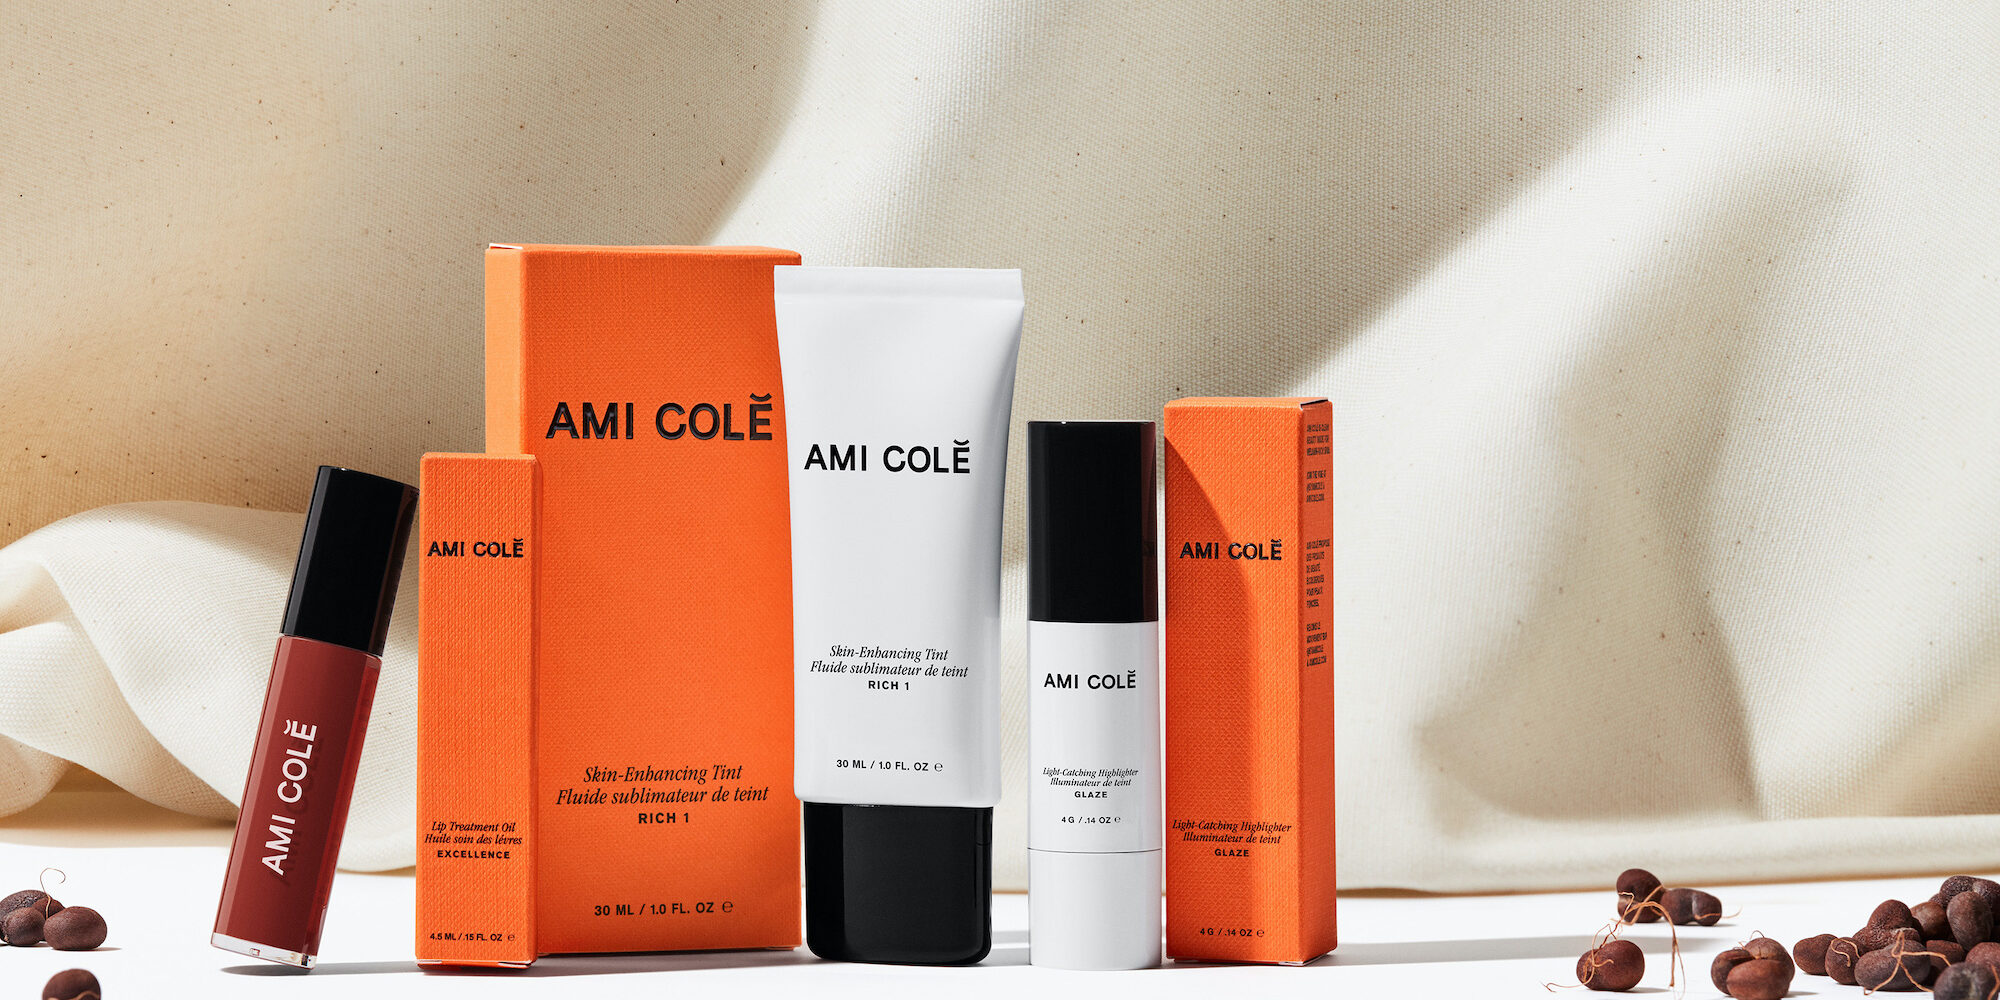 Powered By $1M In Funding, Senegalese-Inspired Clean Beauty Brand Ami Colé Celebrates Melanin-Rich Skin